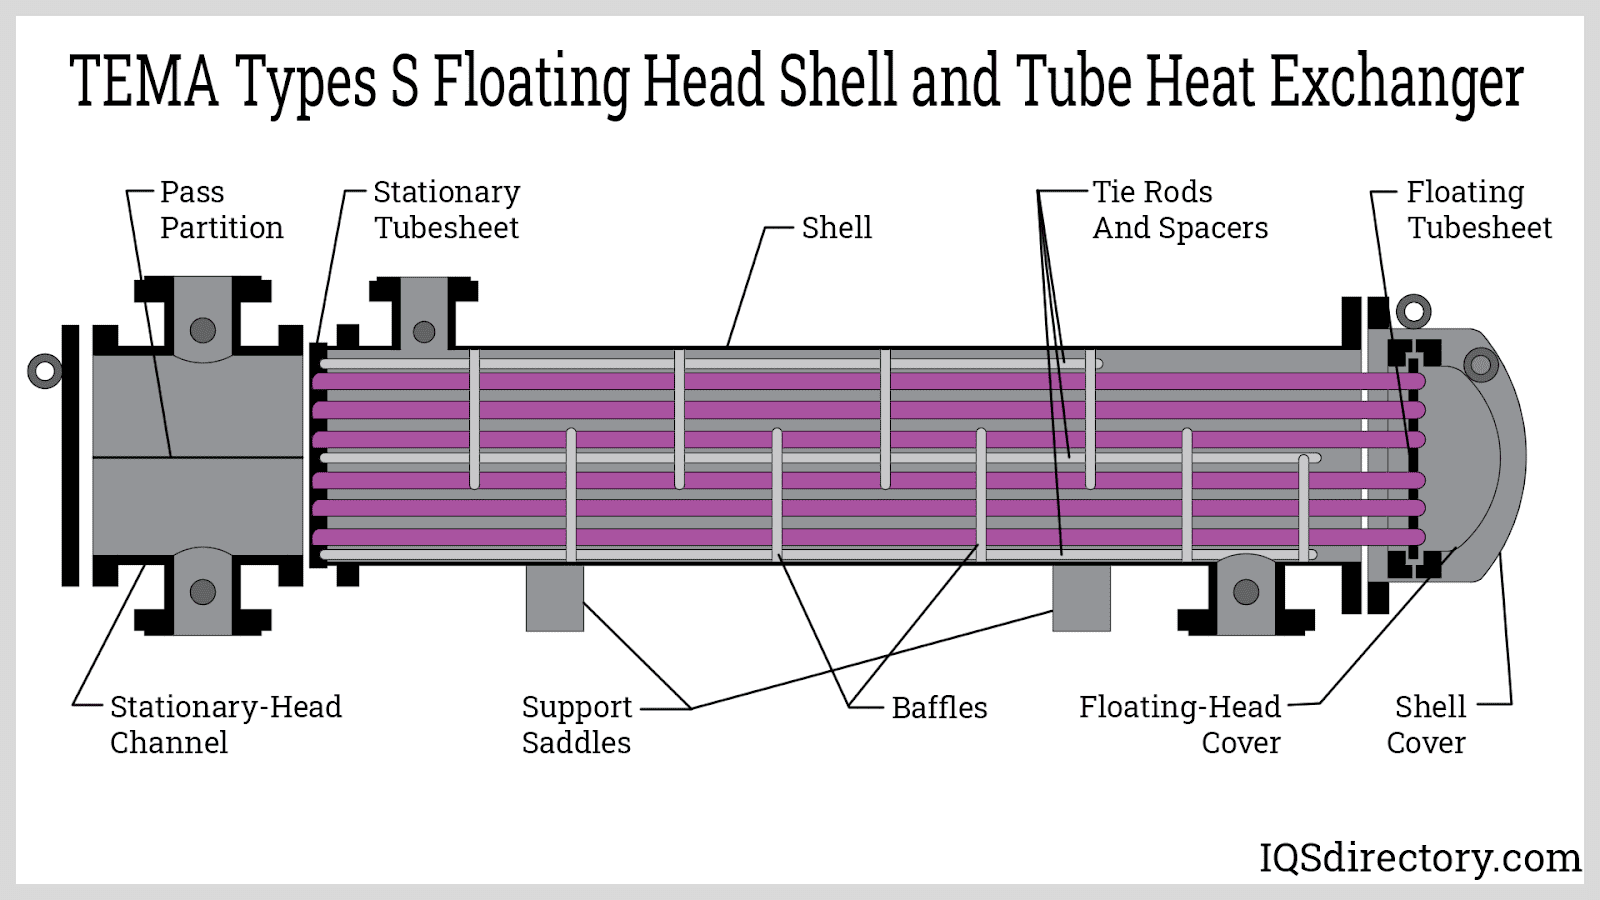 TEMA Types S Floating Head Shell and Tube Heat Exchanger